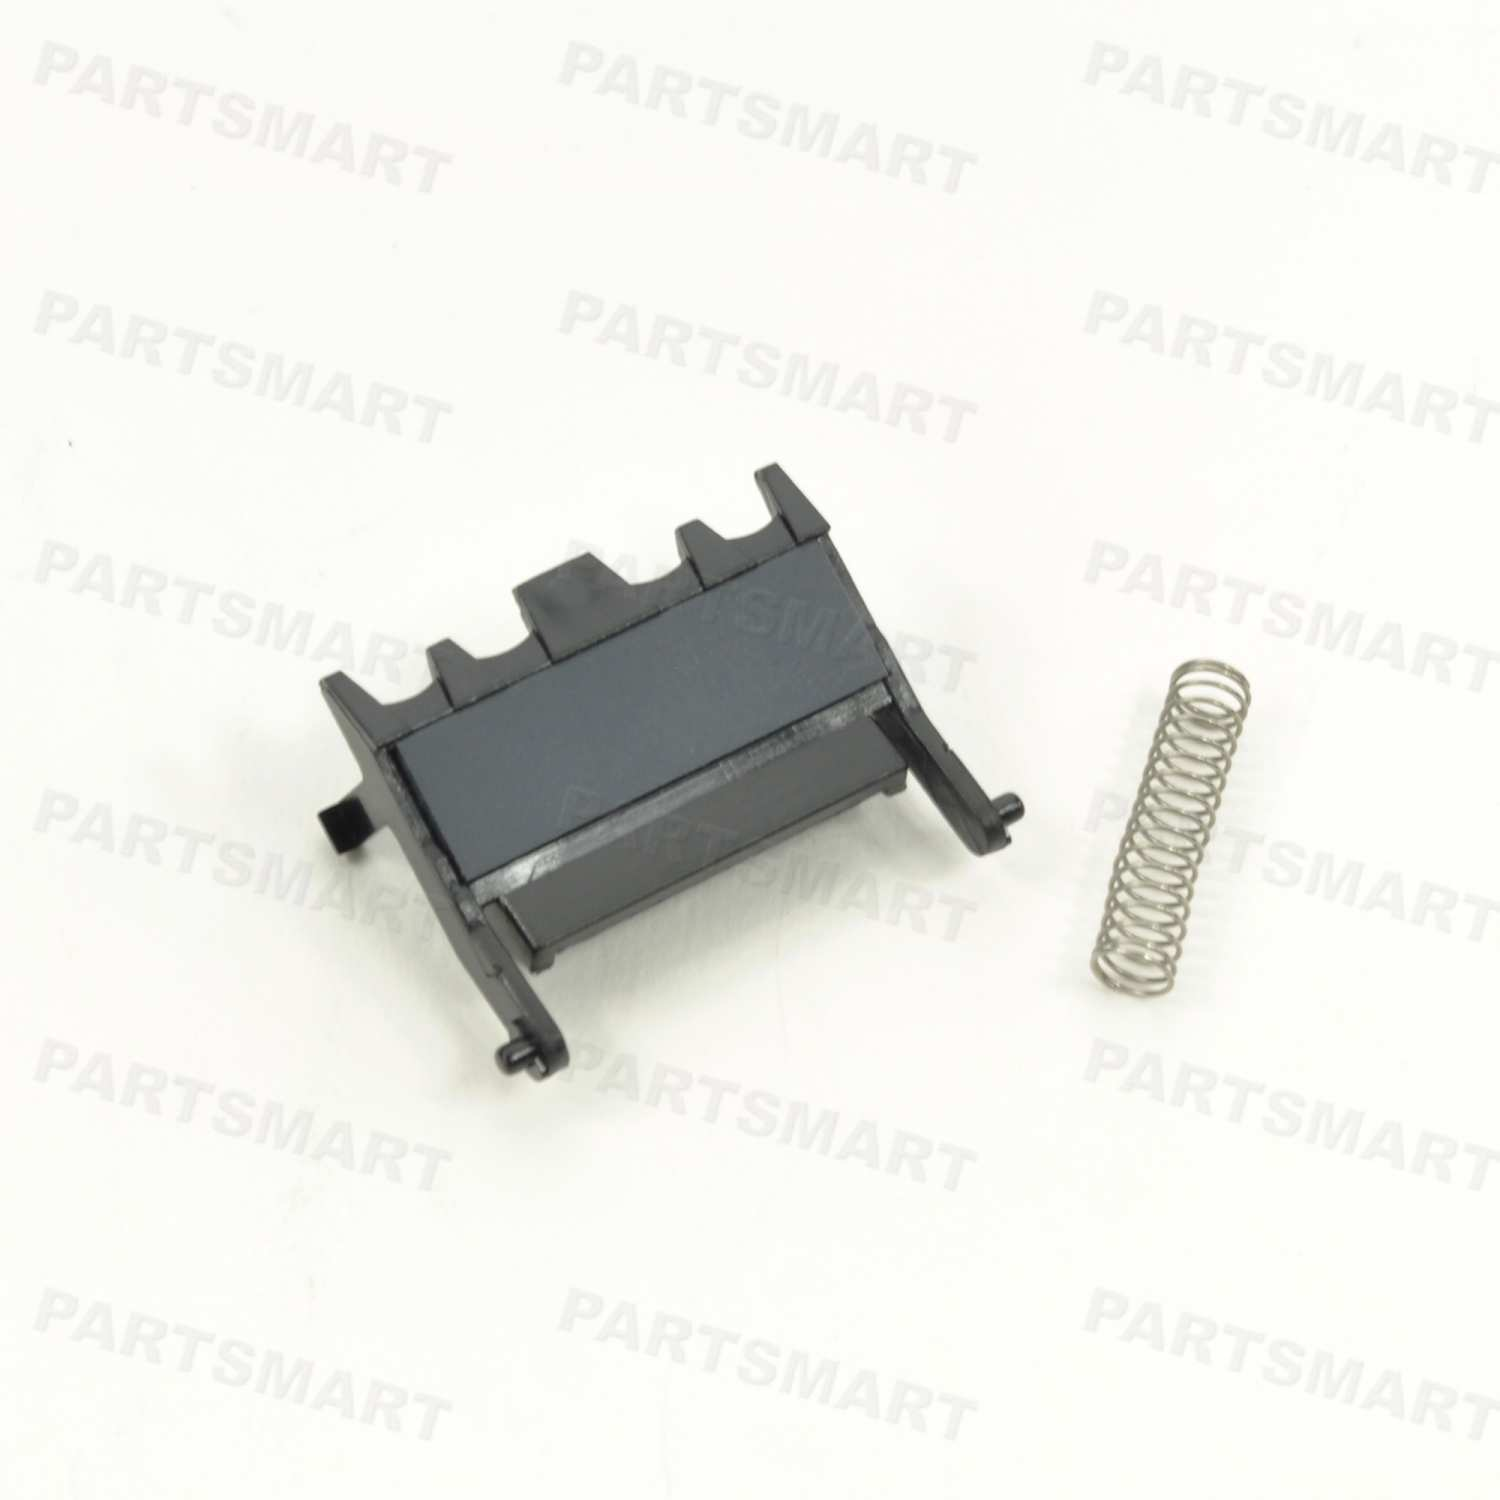 SP-B7500D Separation Pad Assy for Brother HL-B2000D, DCP-7500D